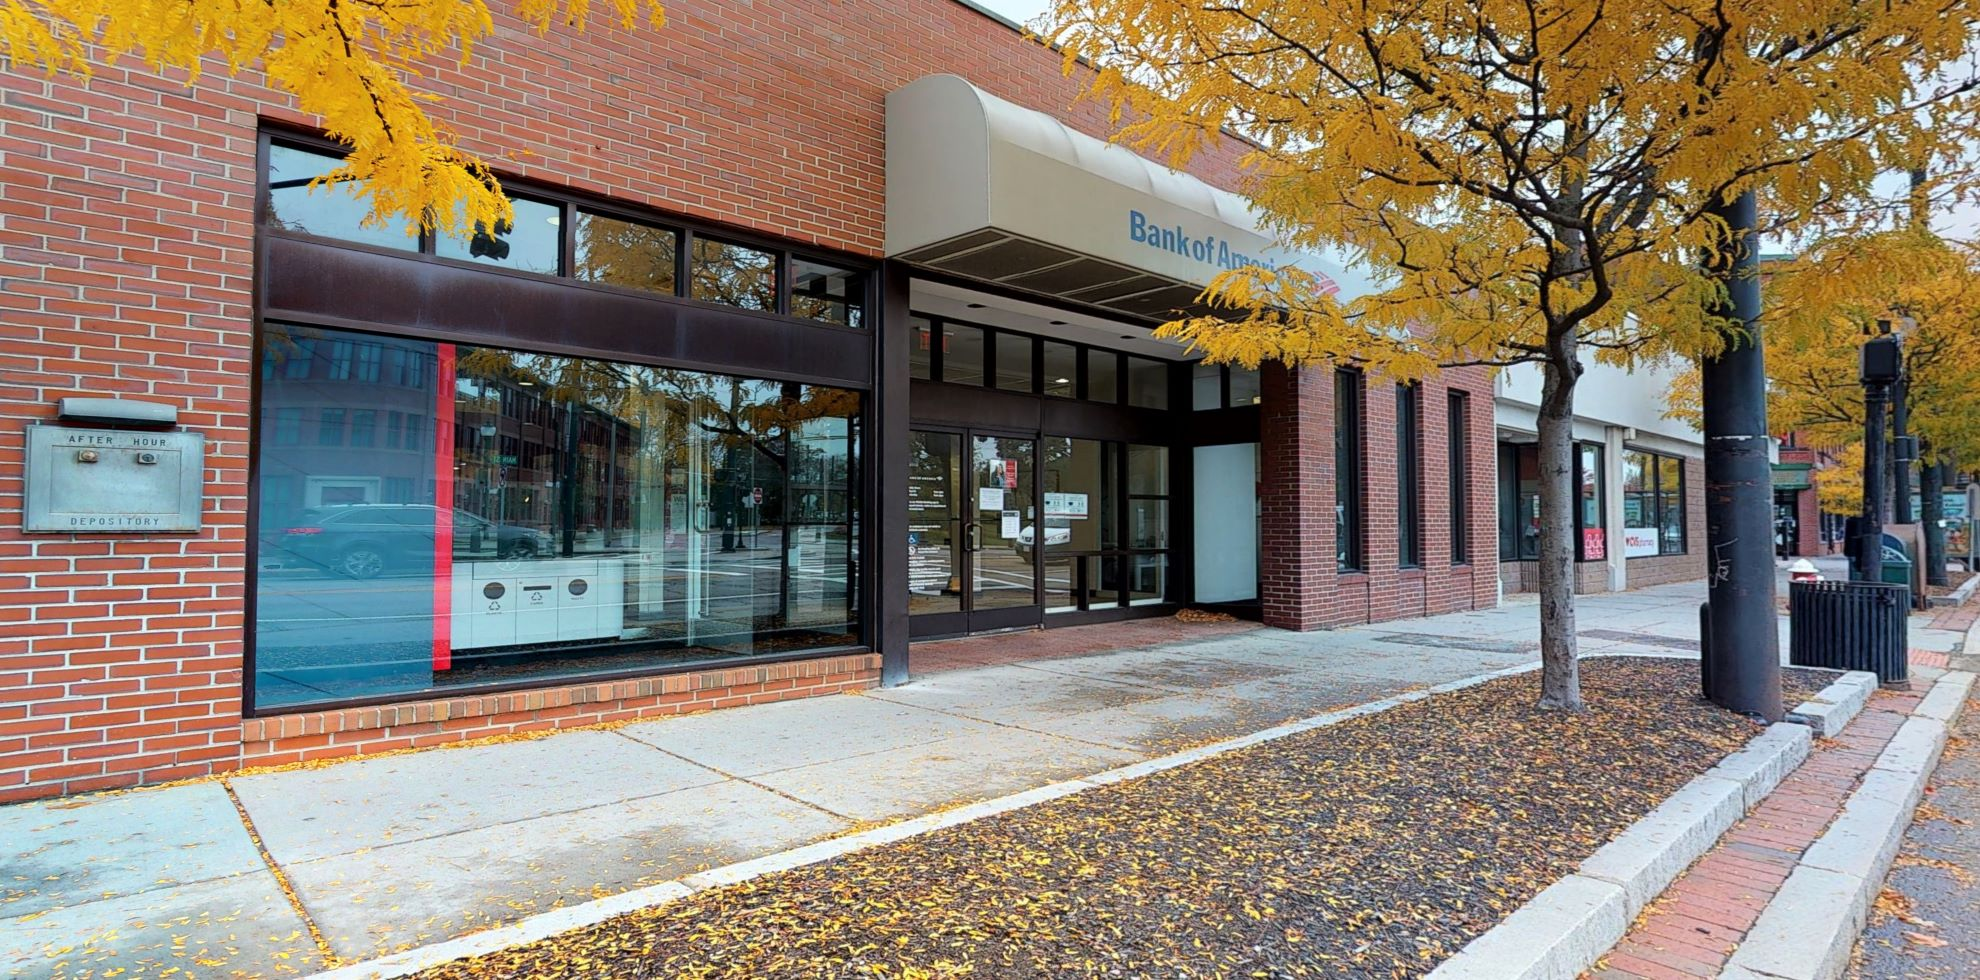 Bank of America financial center with walk-up ATM | 39 Main St, Watertown, MA 02472